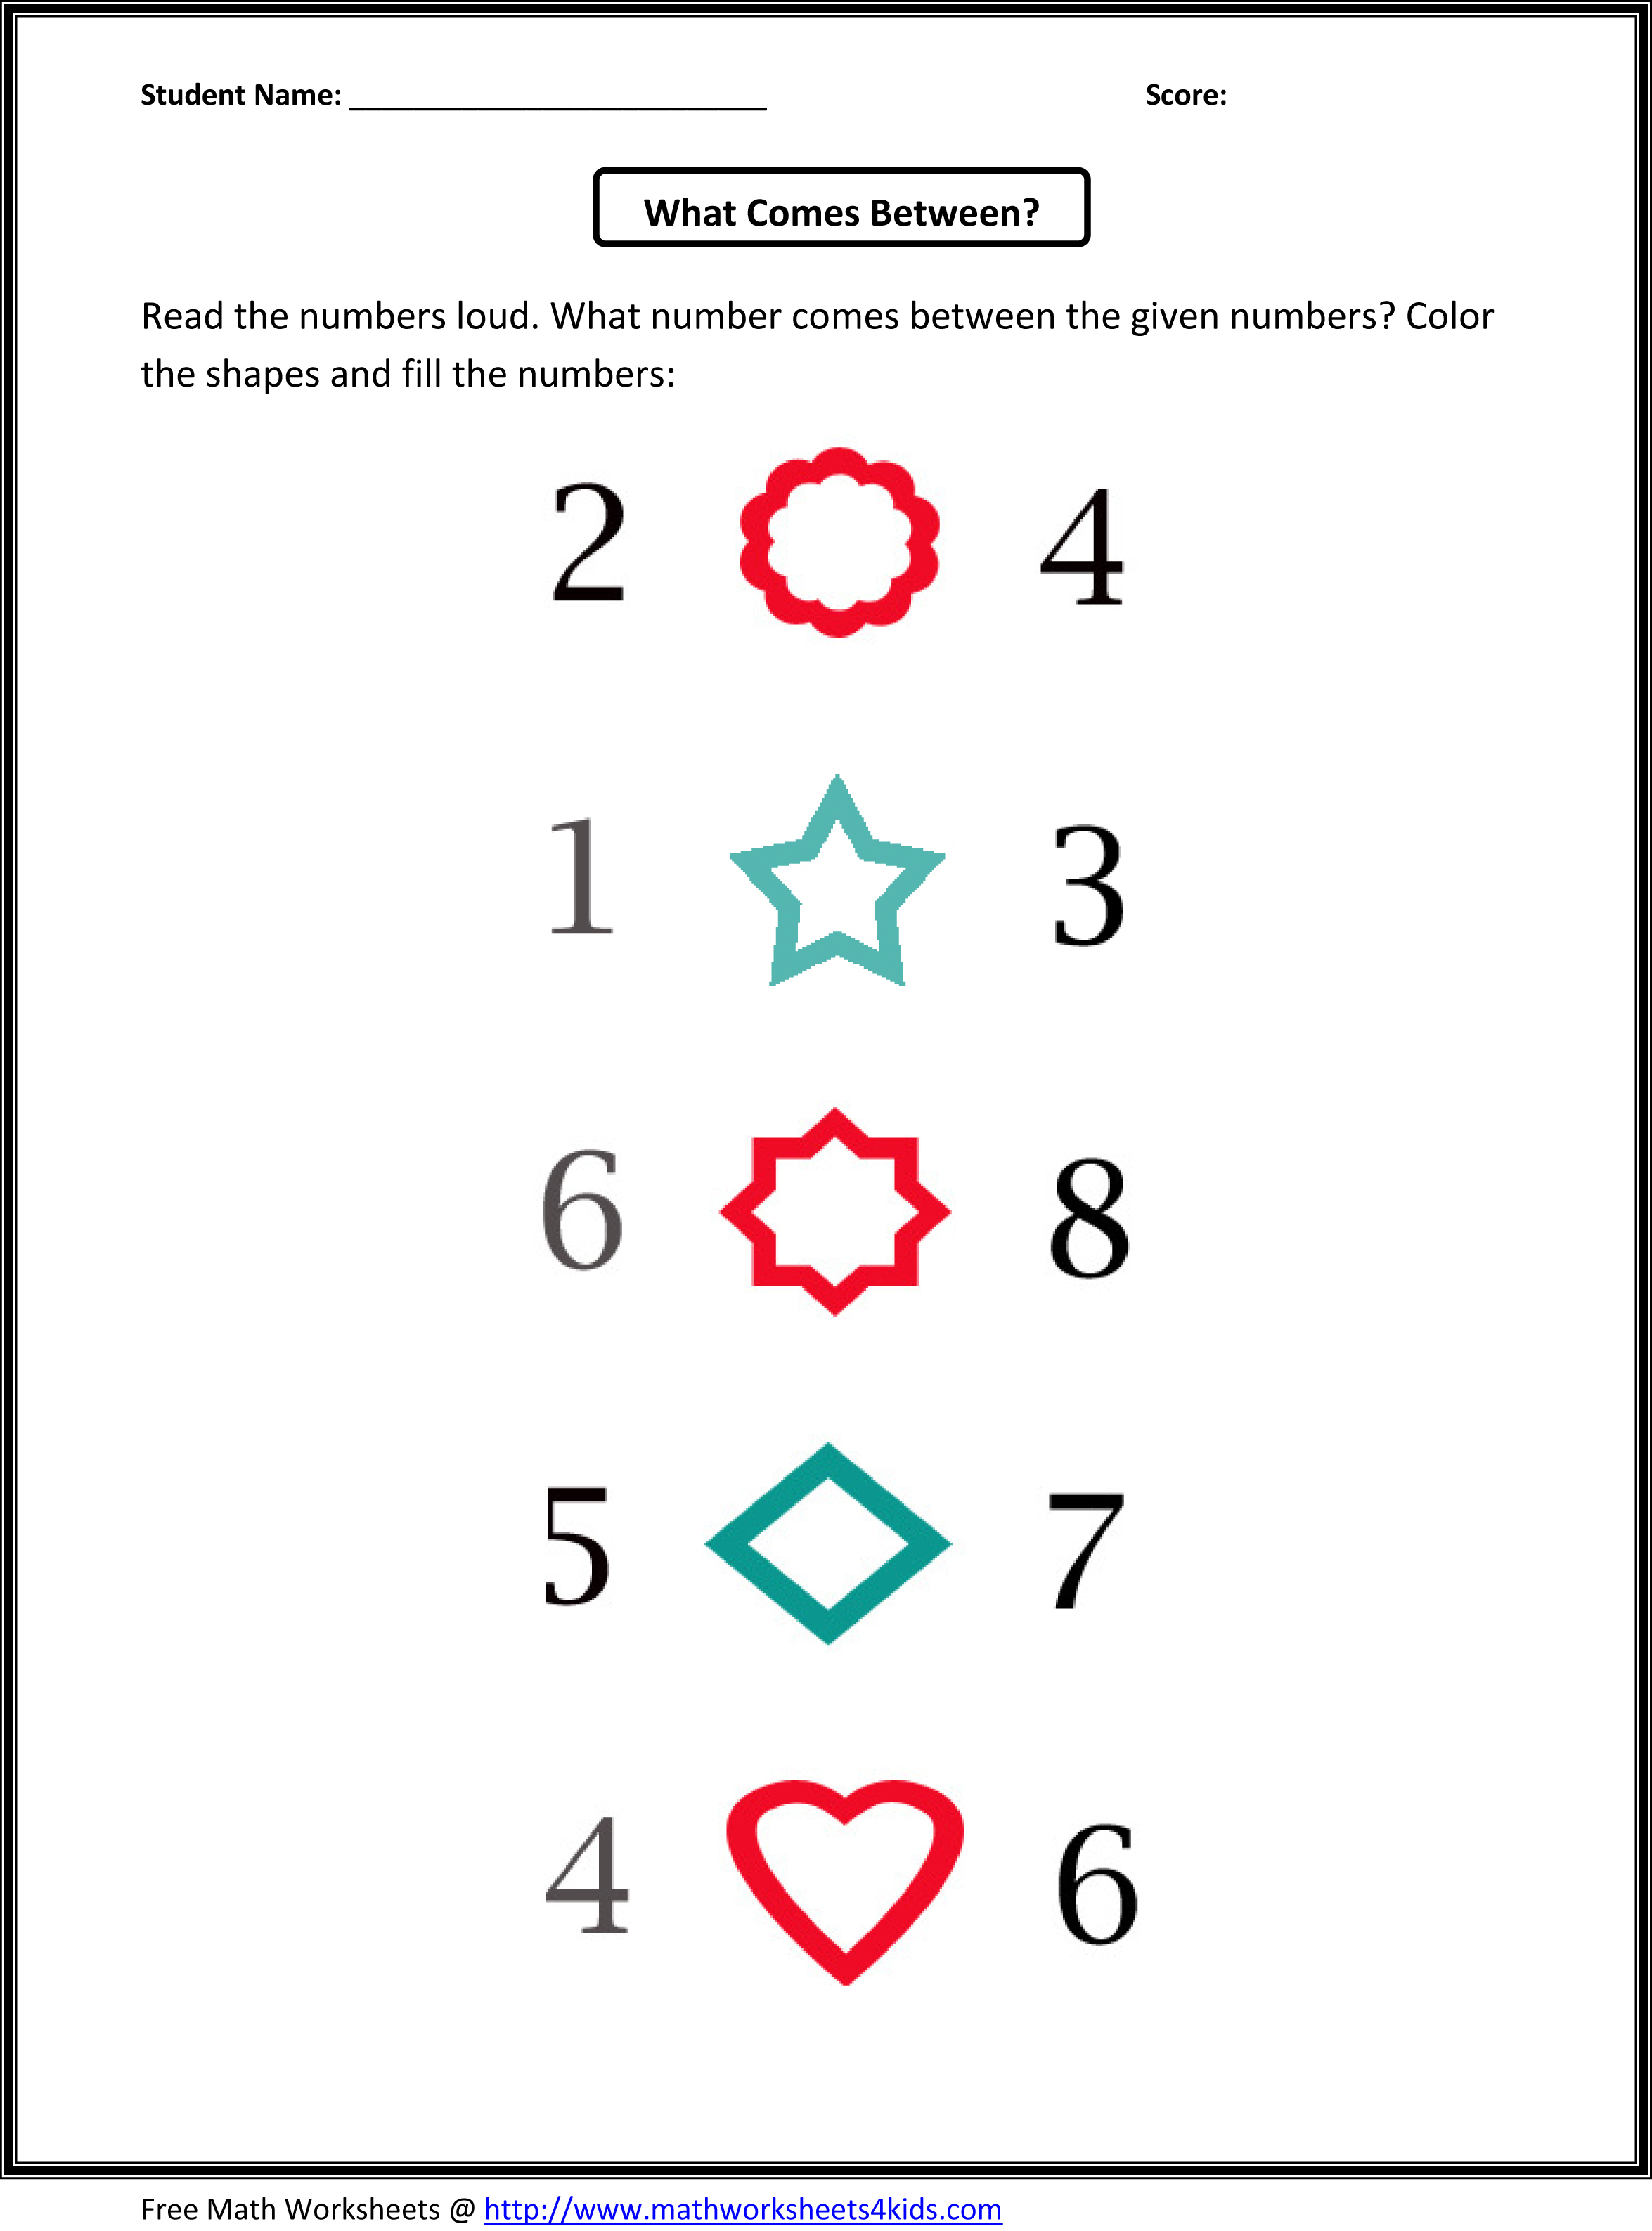 Worksheet Works For Kindergarten Scalien – Math Worksheets Works